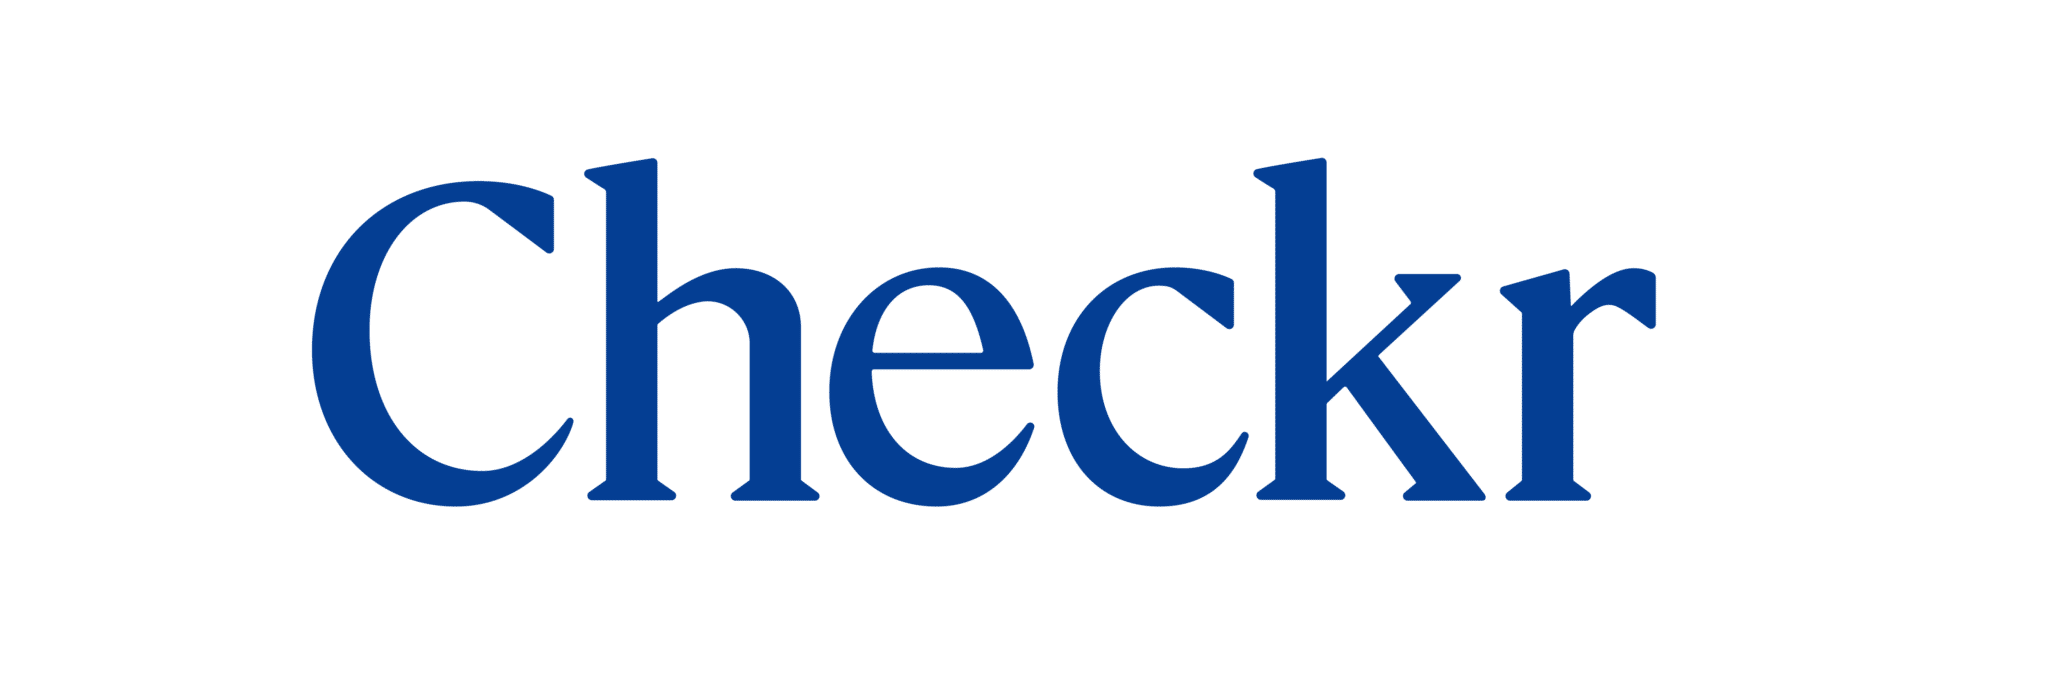 Checkr_logo